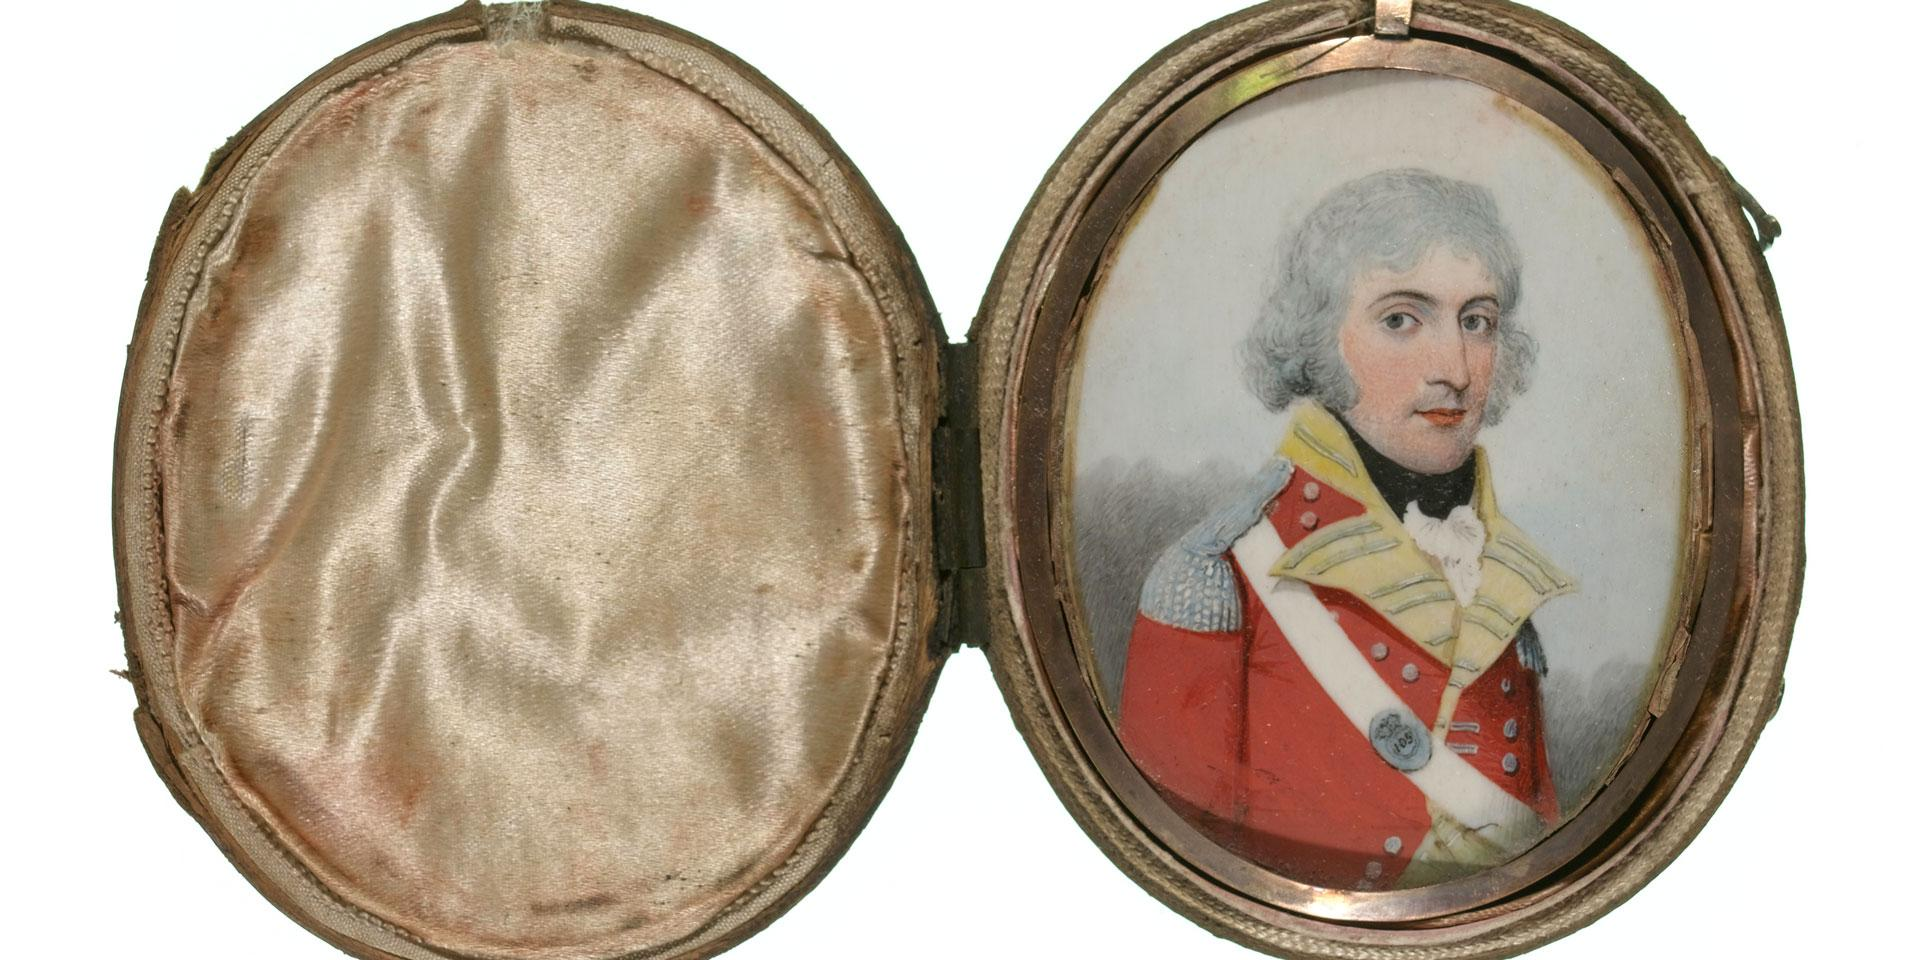 Miniature of an unidentified officer of the 105th Regiment, 1795